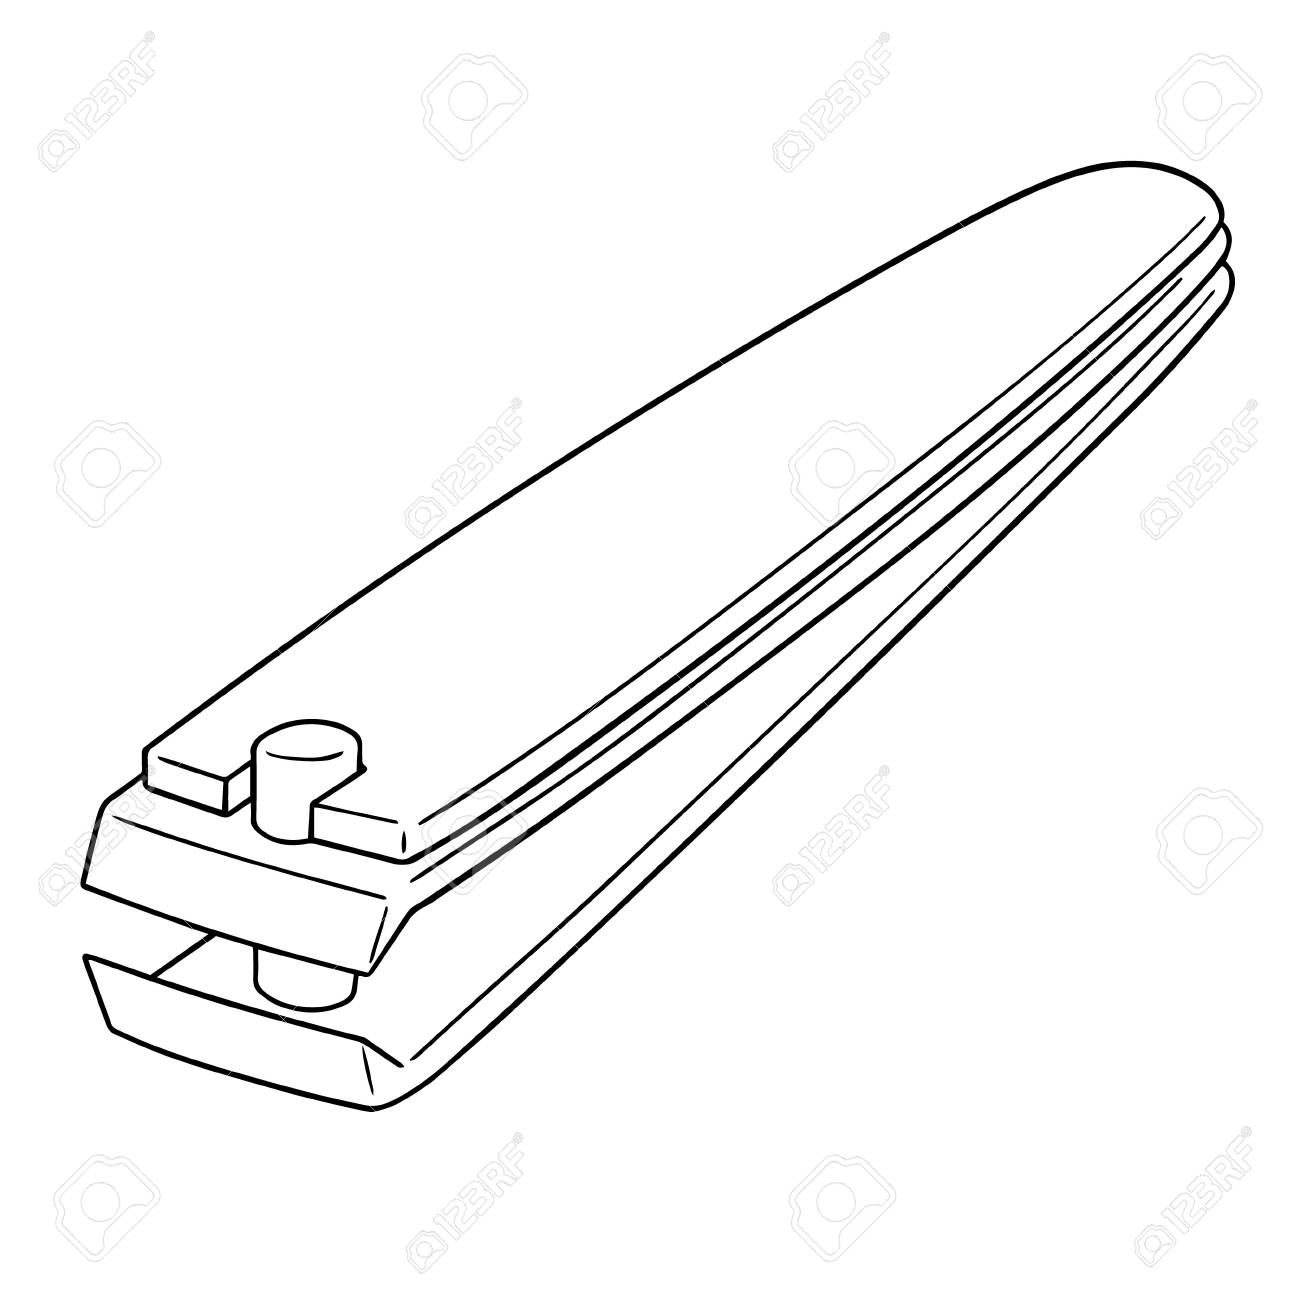 vector of nail clipper.